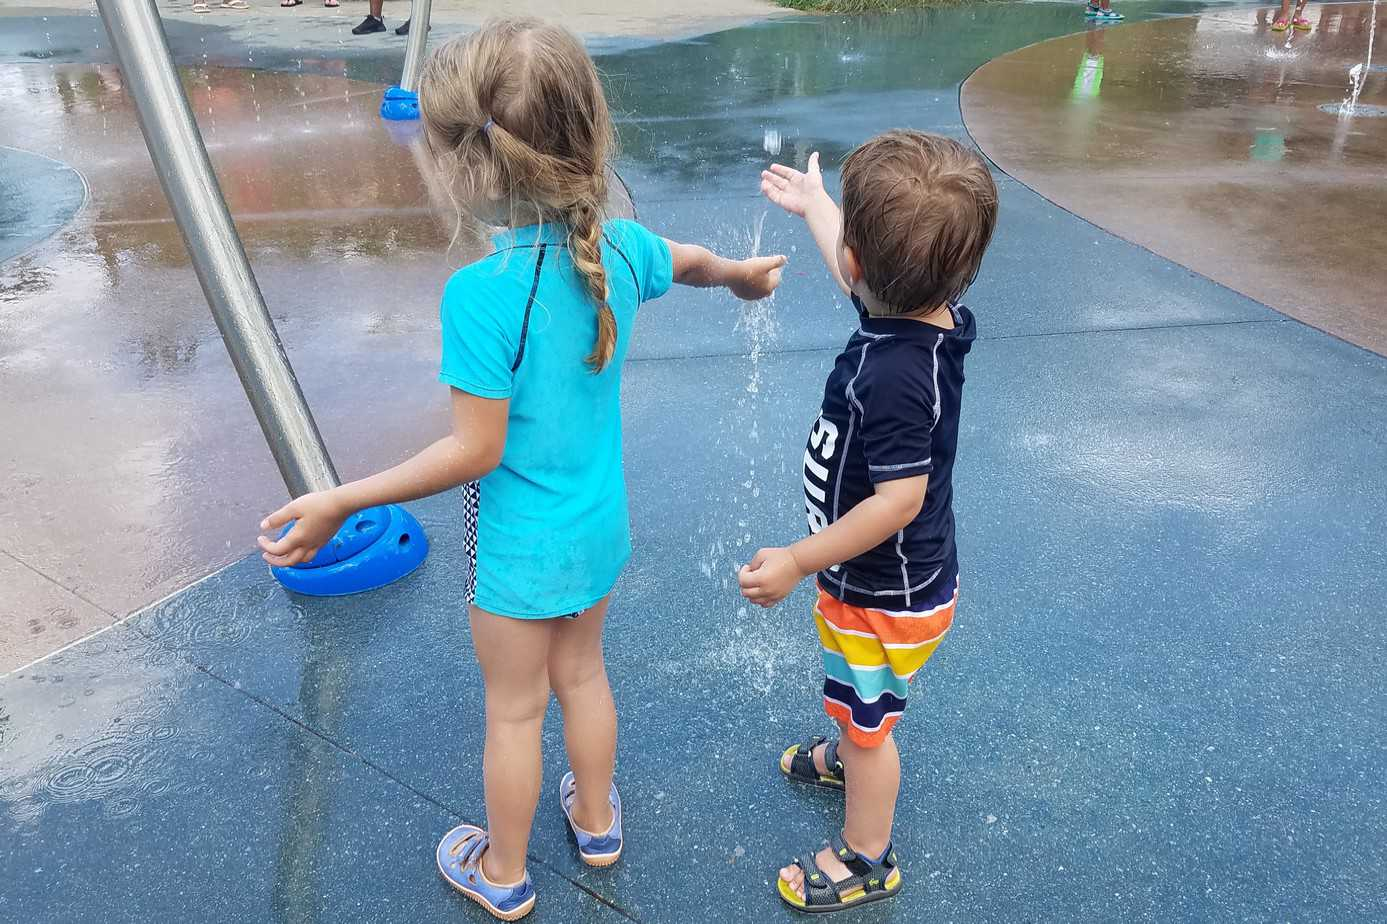 Preschool girl and boy playing in a splash pad on a hot summer day.